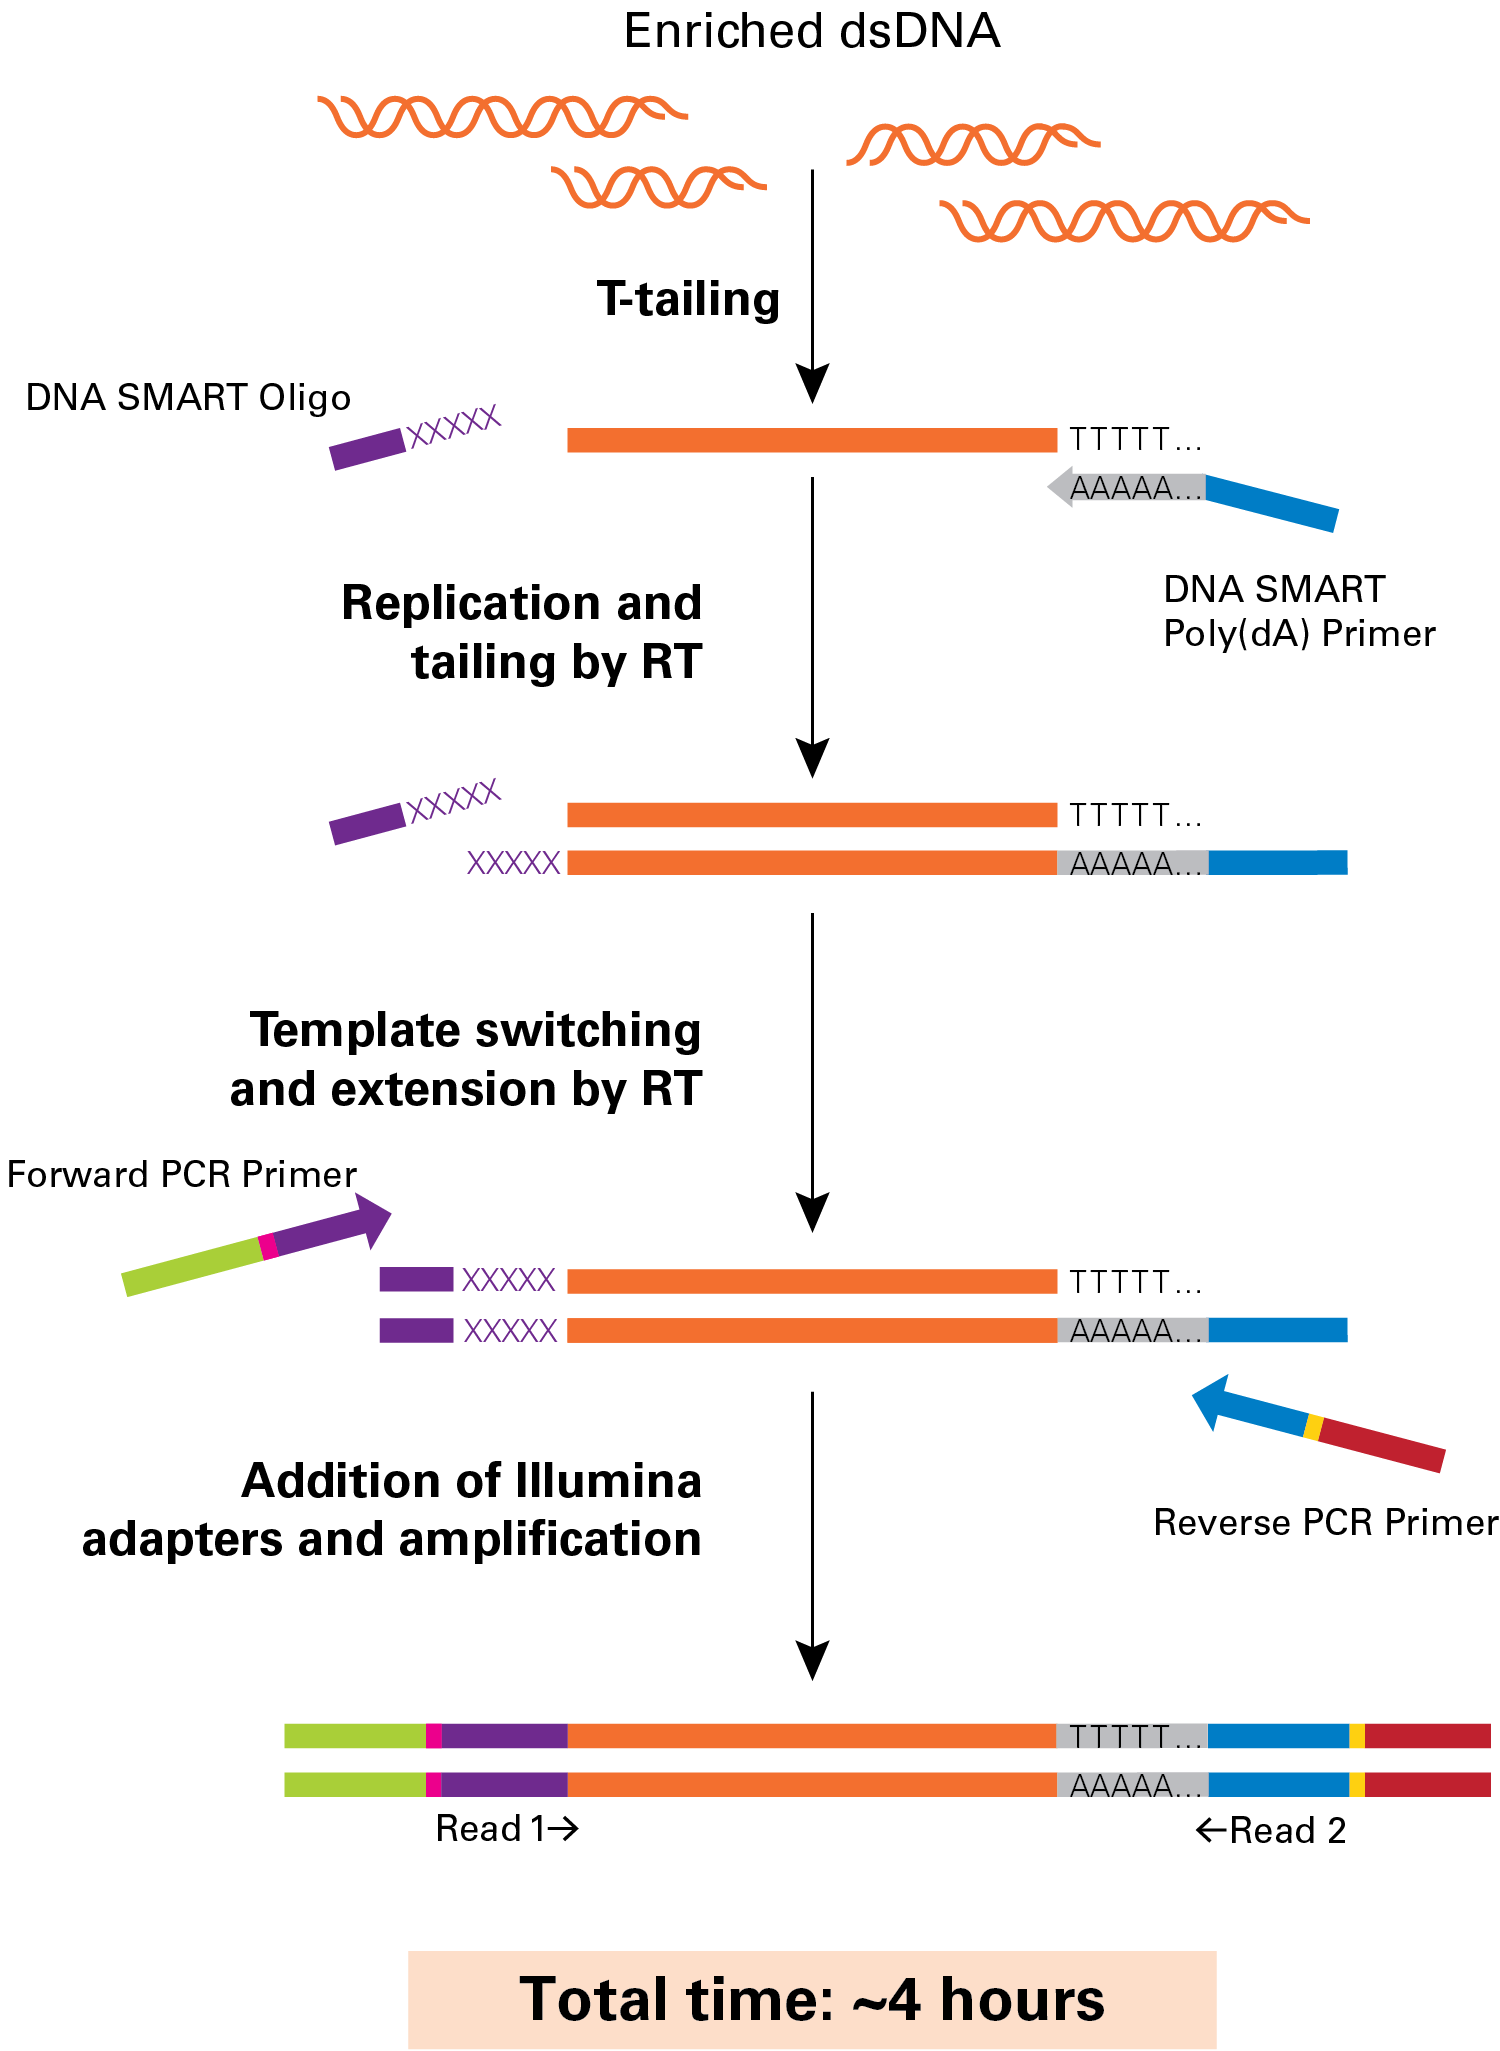 Flowchart for DNA-SMART ChIP-Seq technology